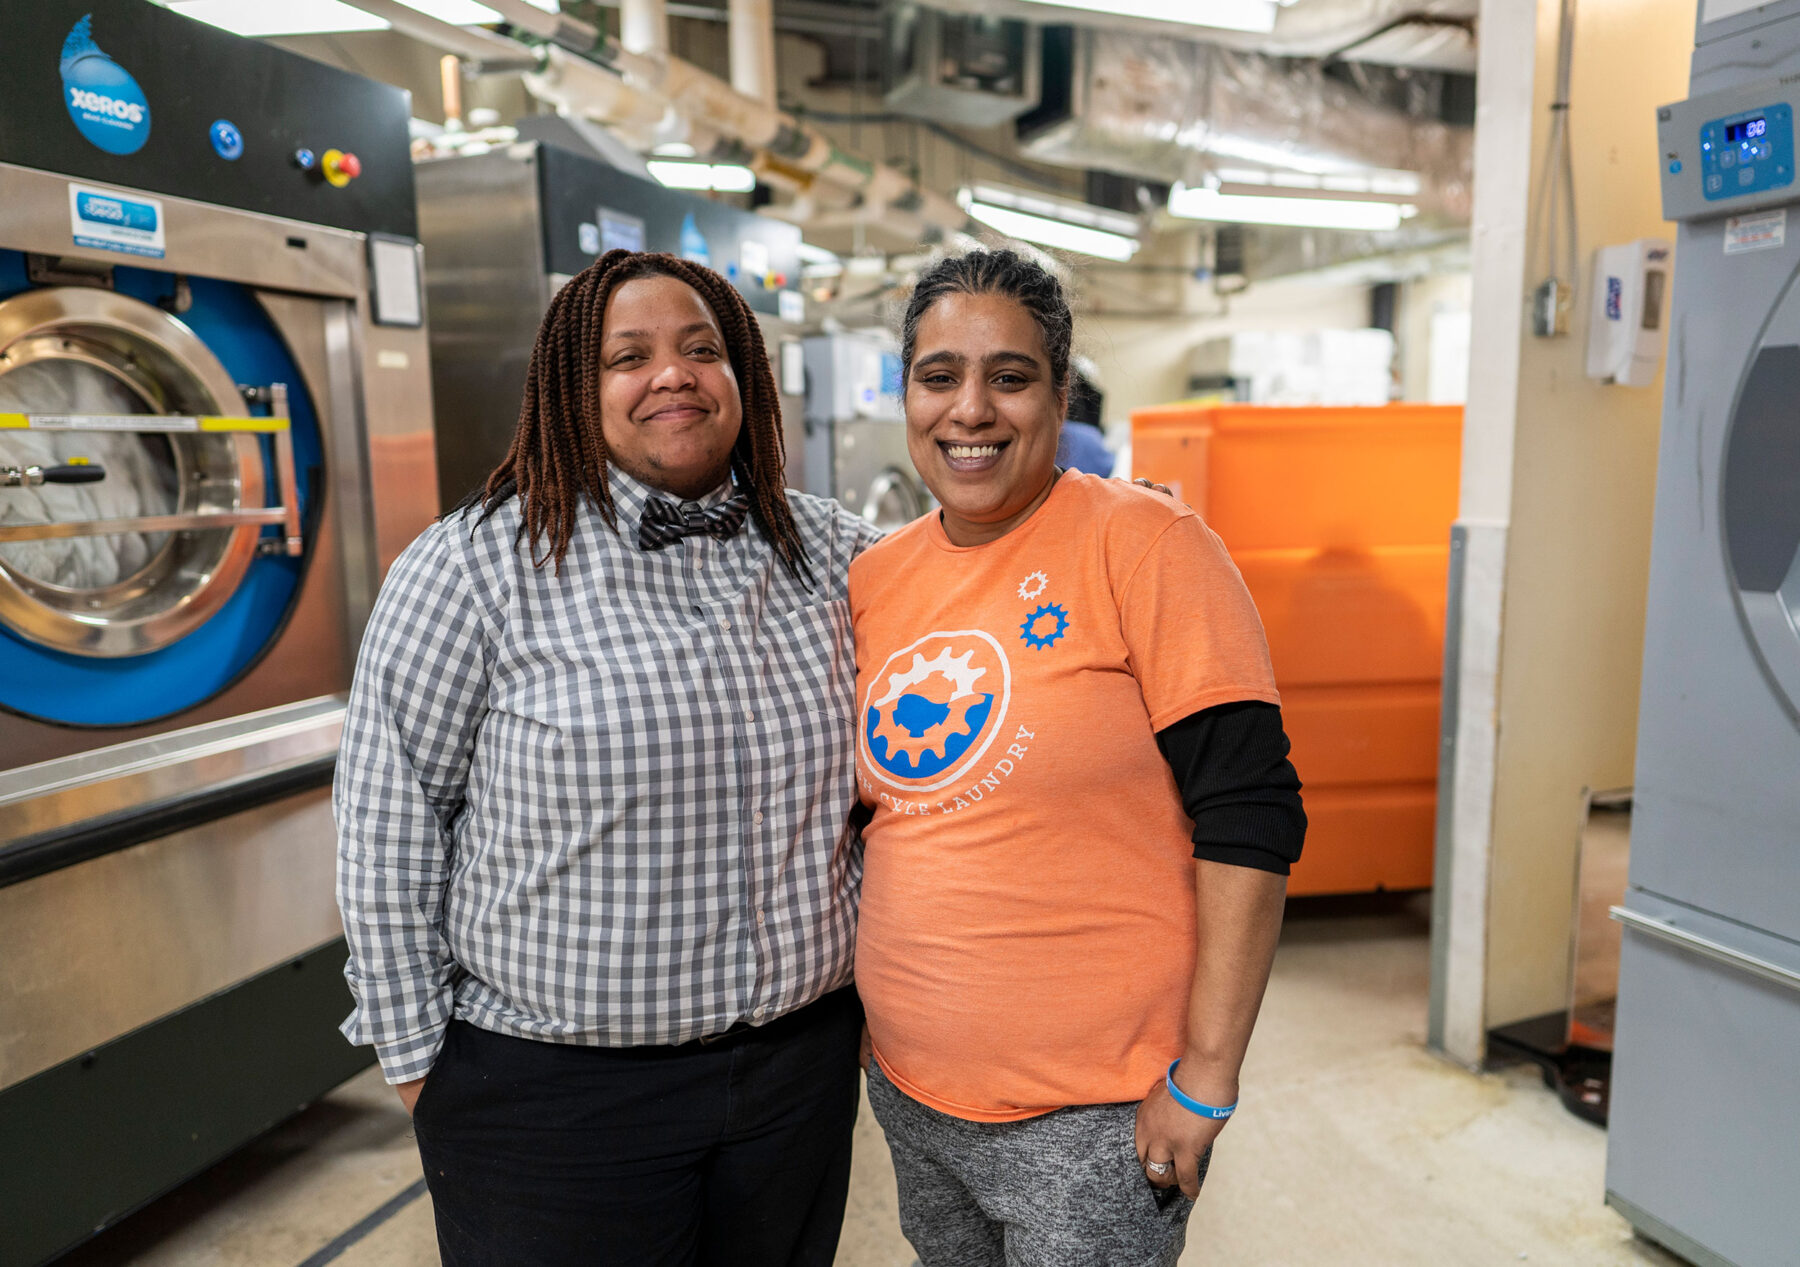 General Manager Shanelle Morton, left, and Plant Manager Luz Adams, right, at Wash Cycle Laundry in Philadelphia. Photo by Jessica Kourkounis